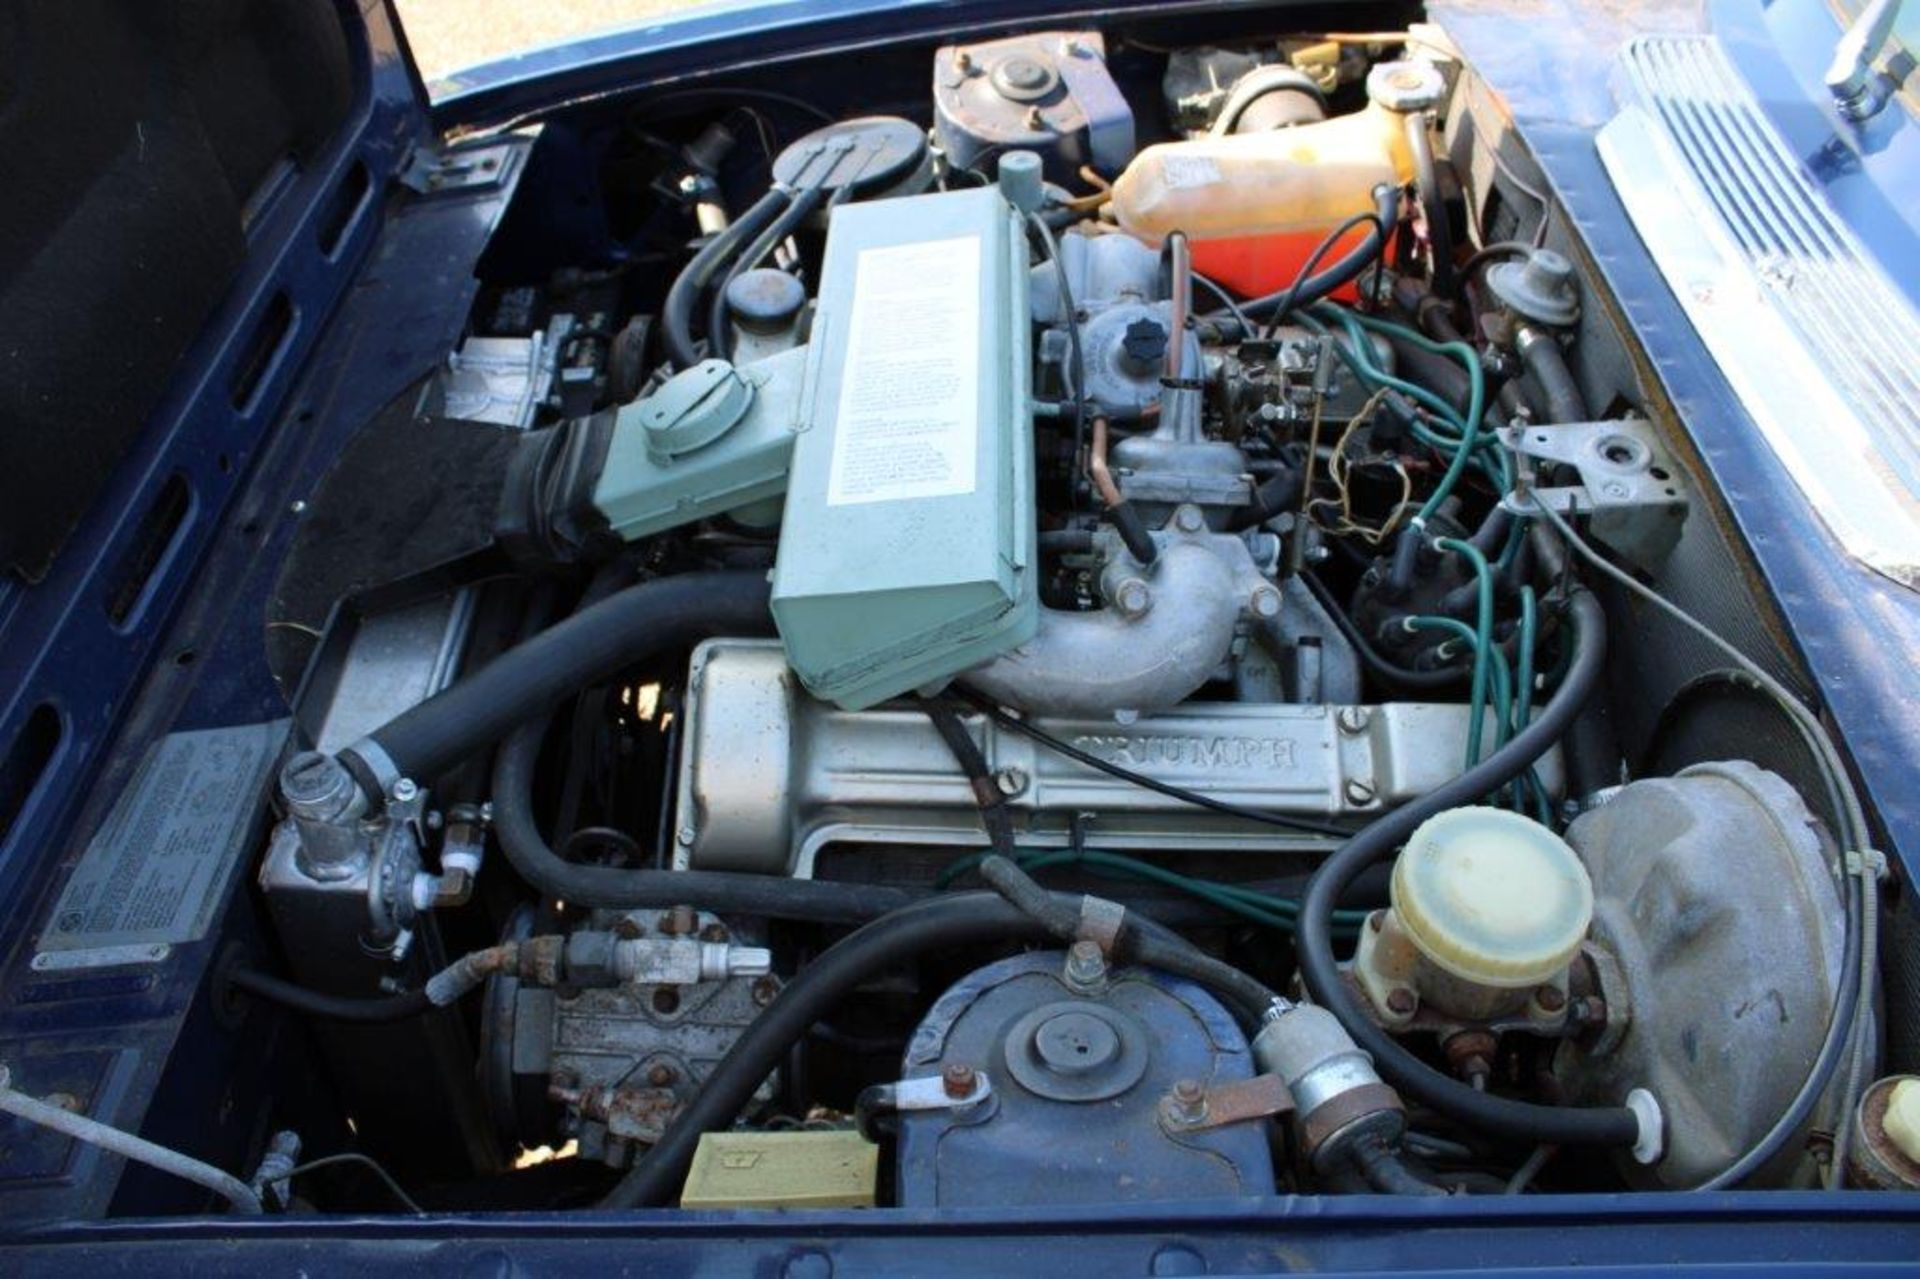 1973 Triumph Stag 3.0 LHD - Image 21 of 28